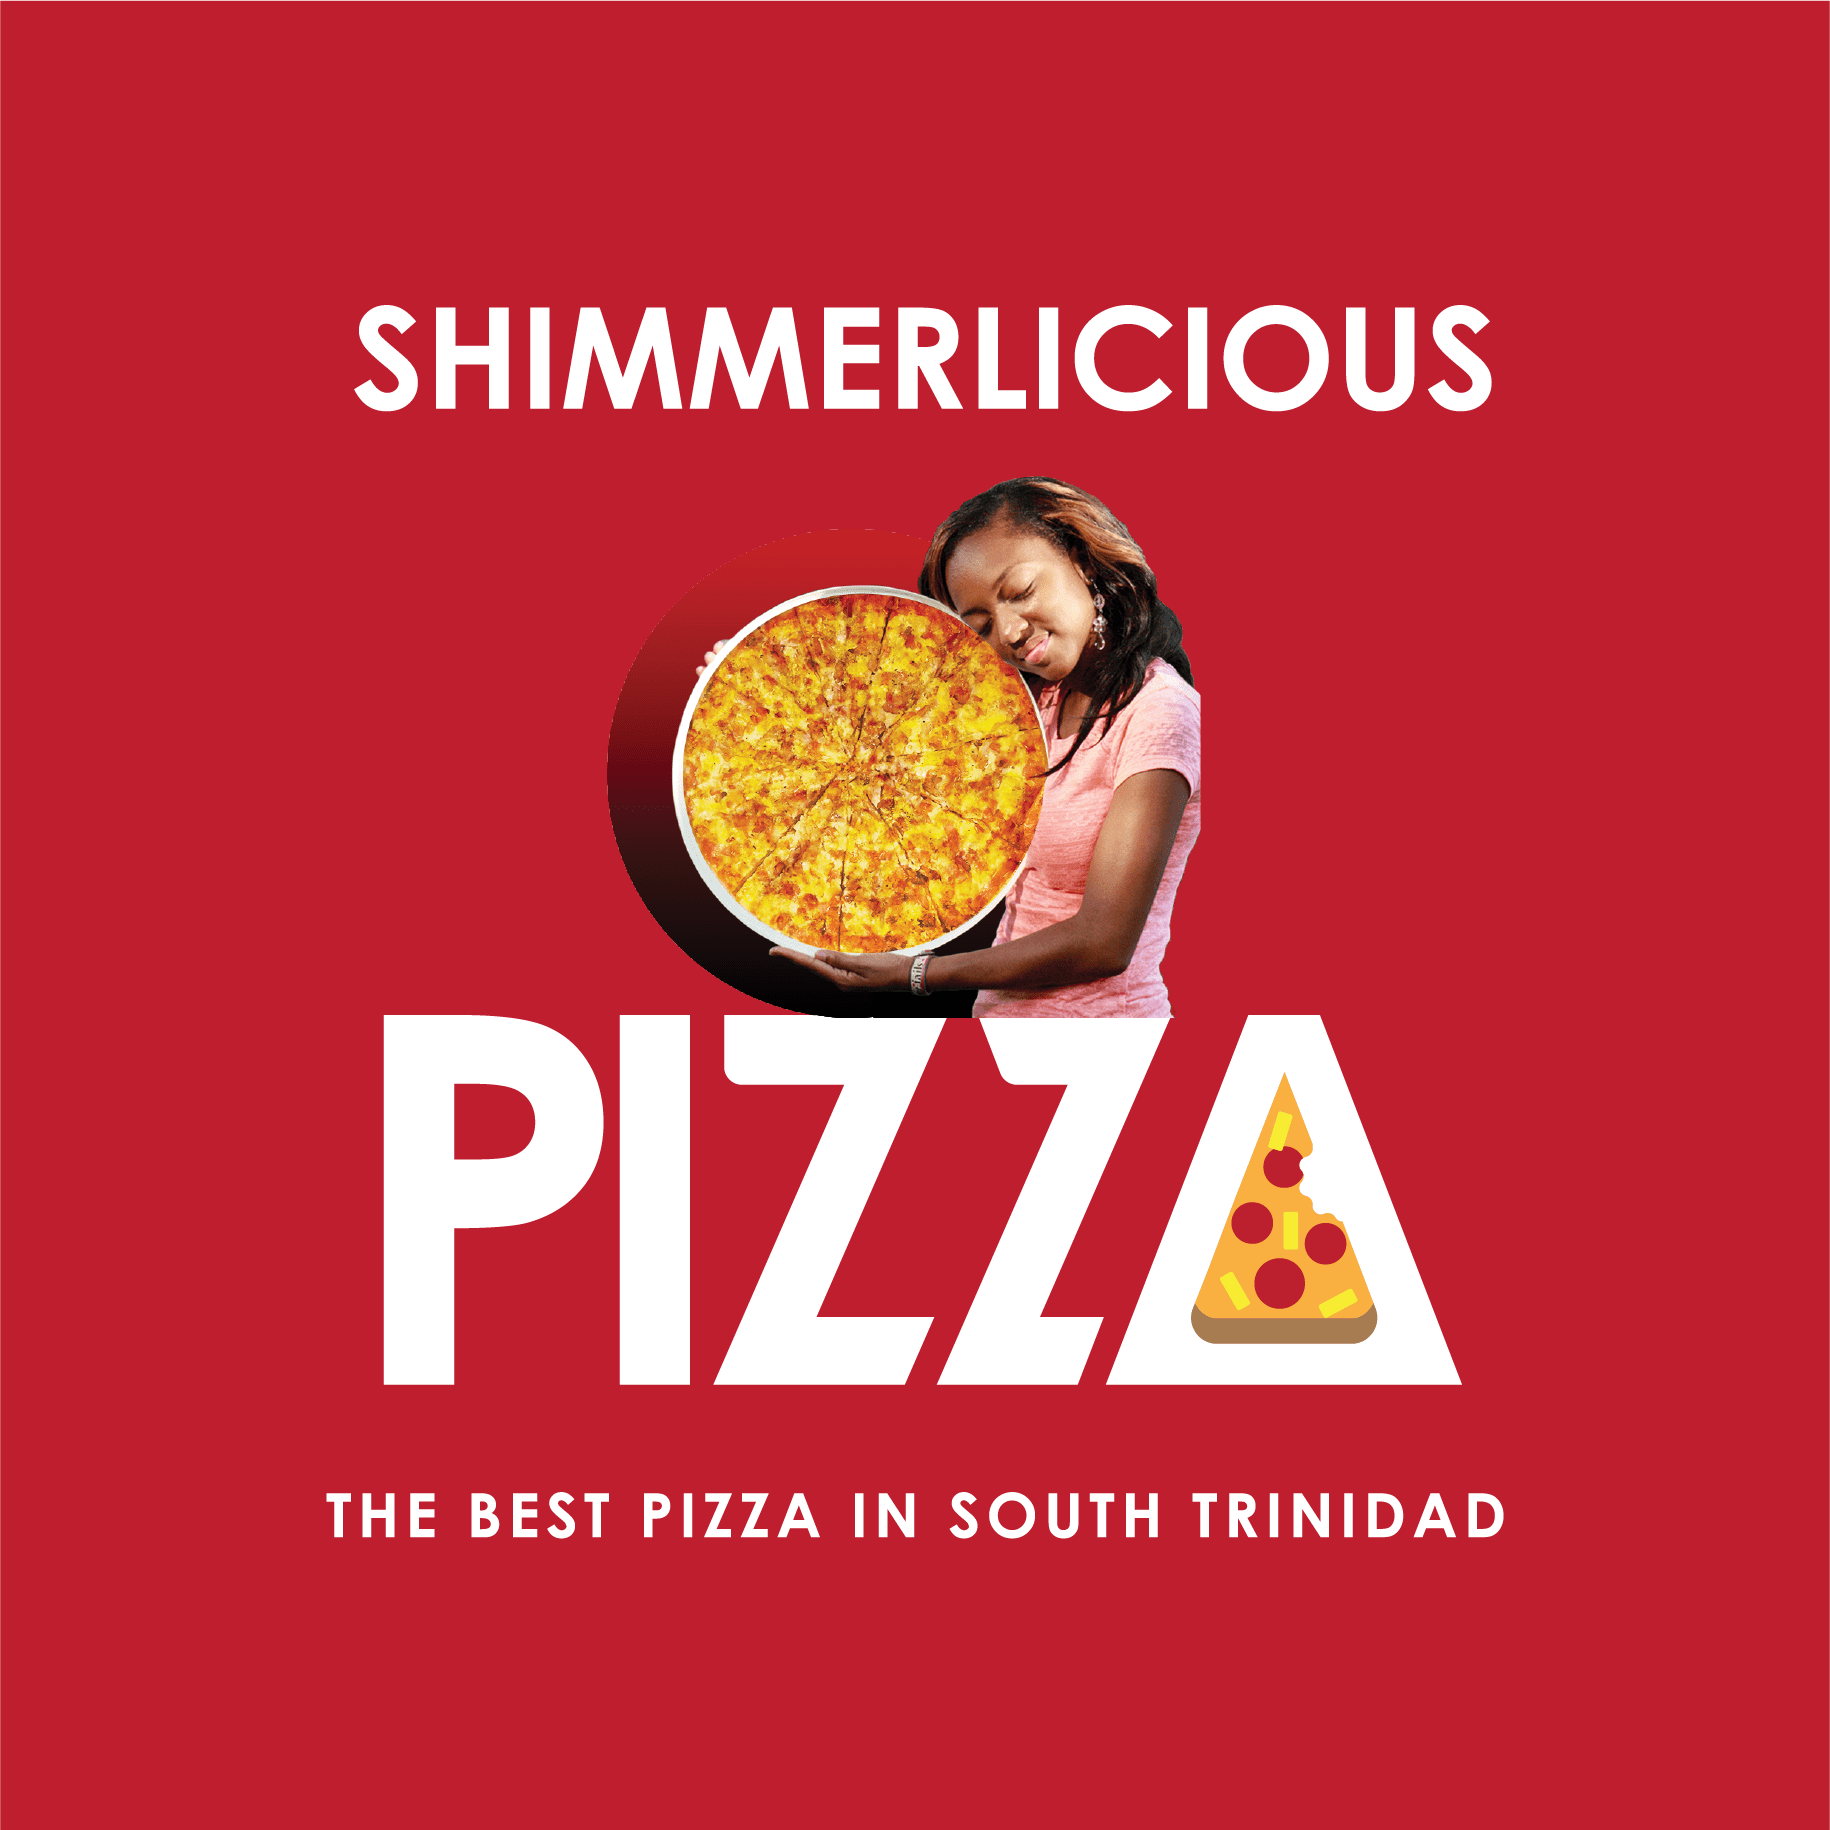 Shimmerlicious Pizza